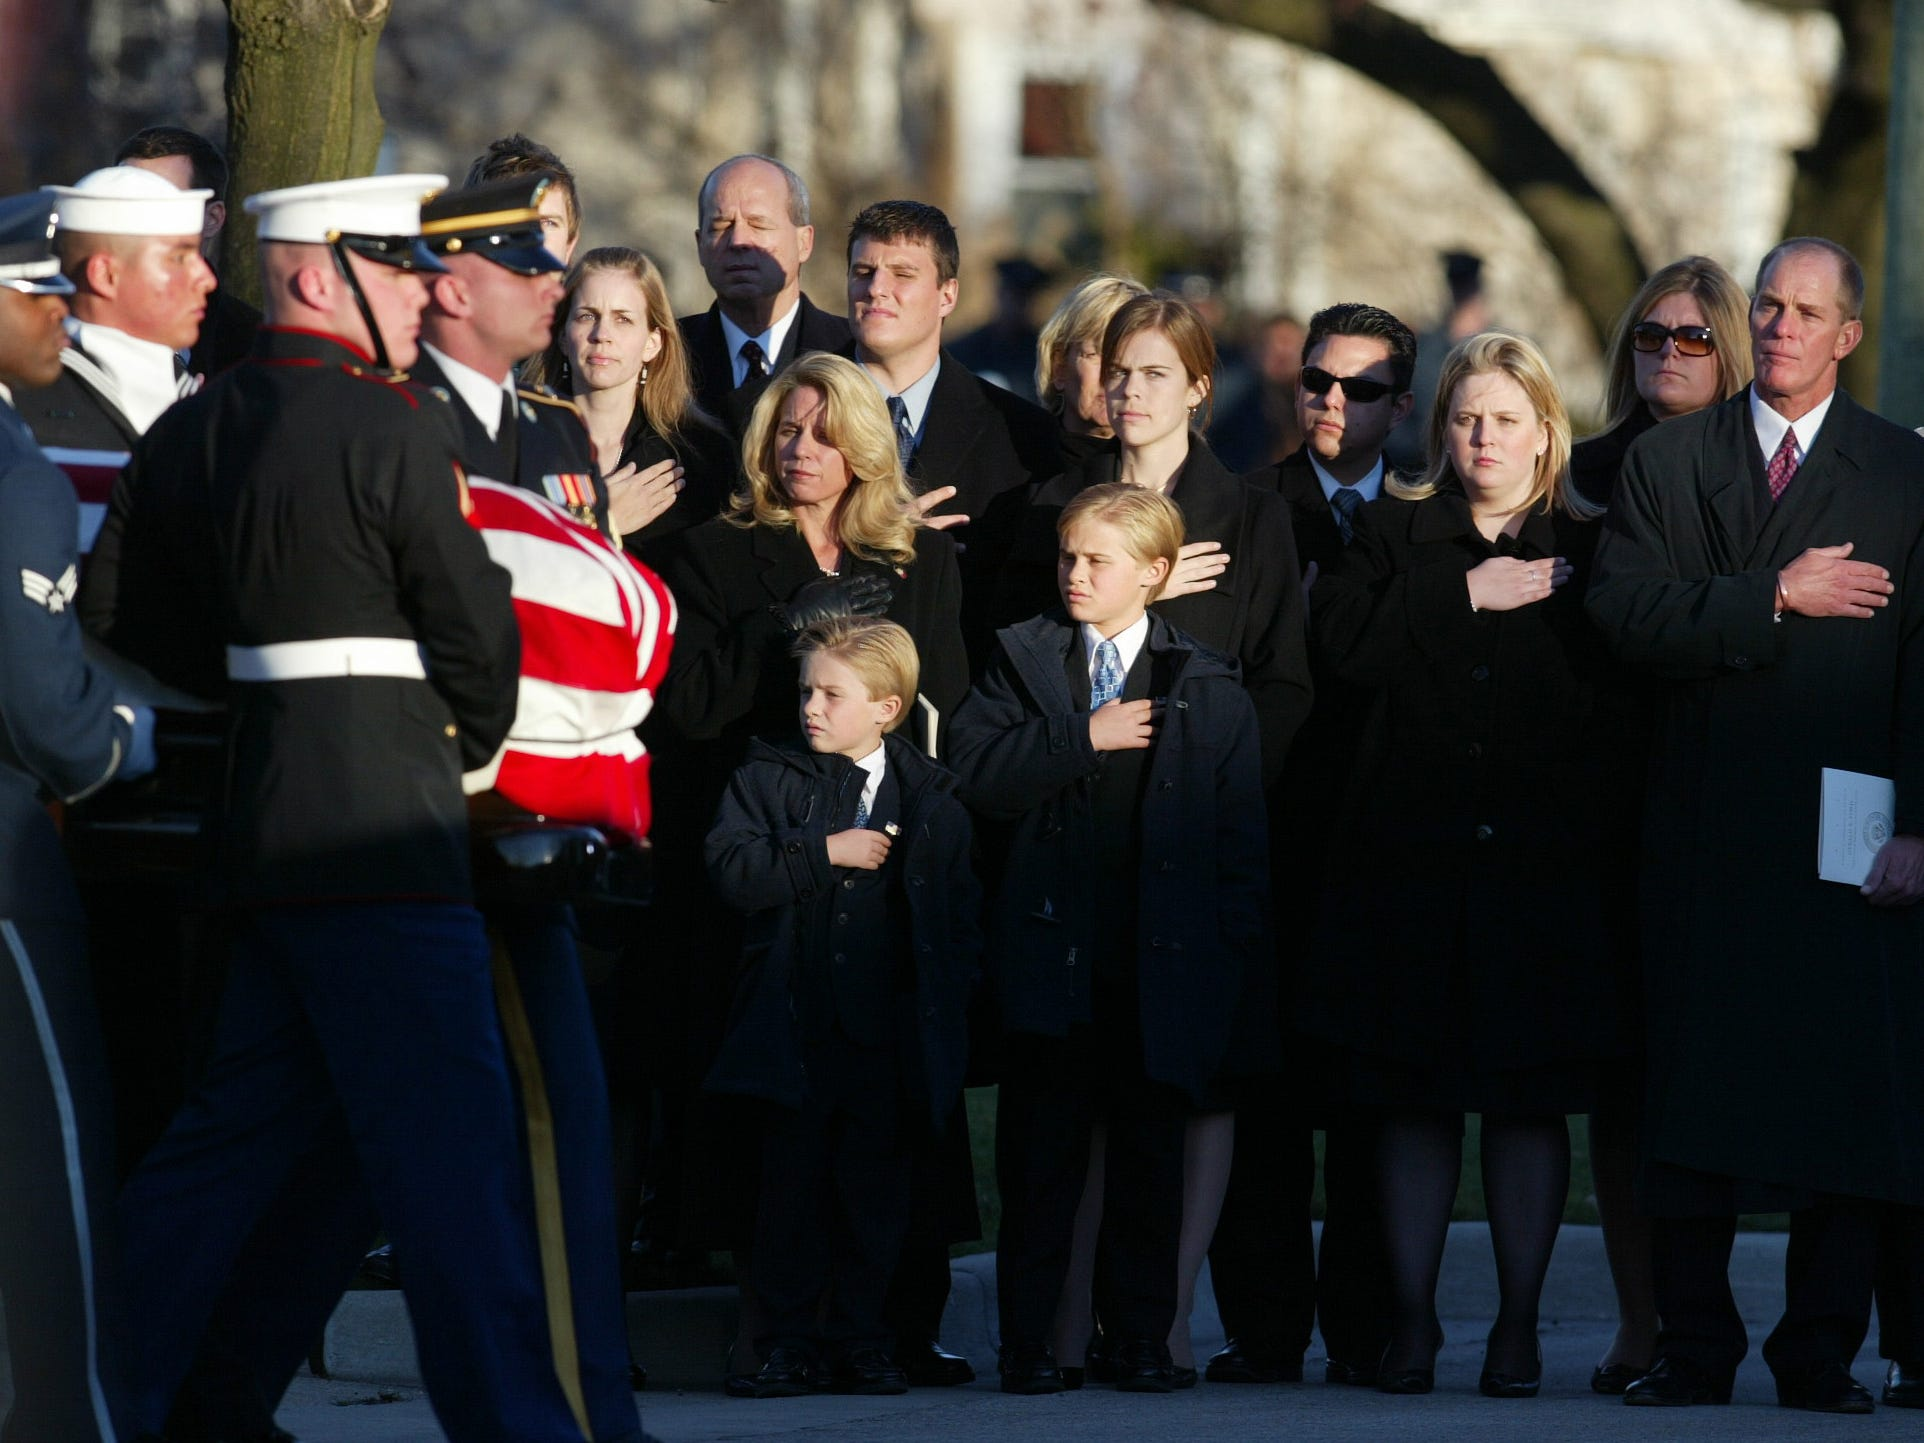 The family of former President Gerald Ford watches has his casket is loaded into a hearse following a funeral service Wednesday, Jan. 3, 2007, at Grace Episcopal Church in Grand Rapids, Mich.